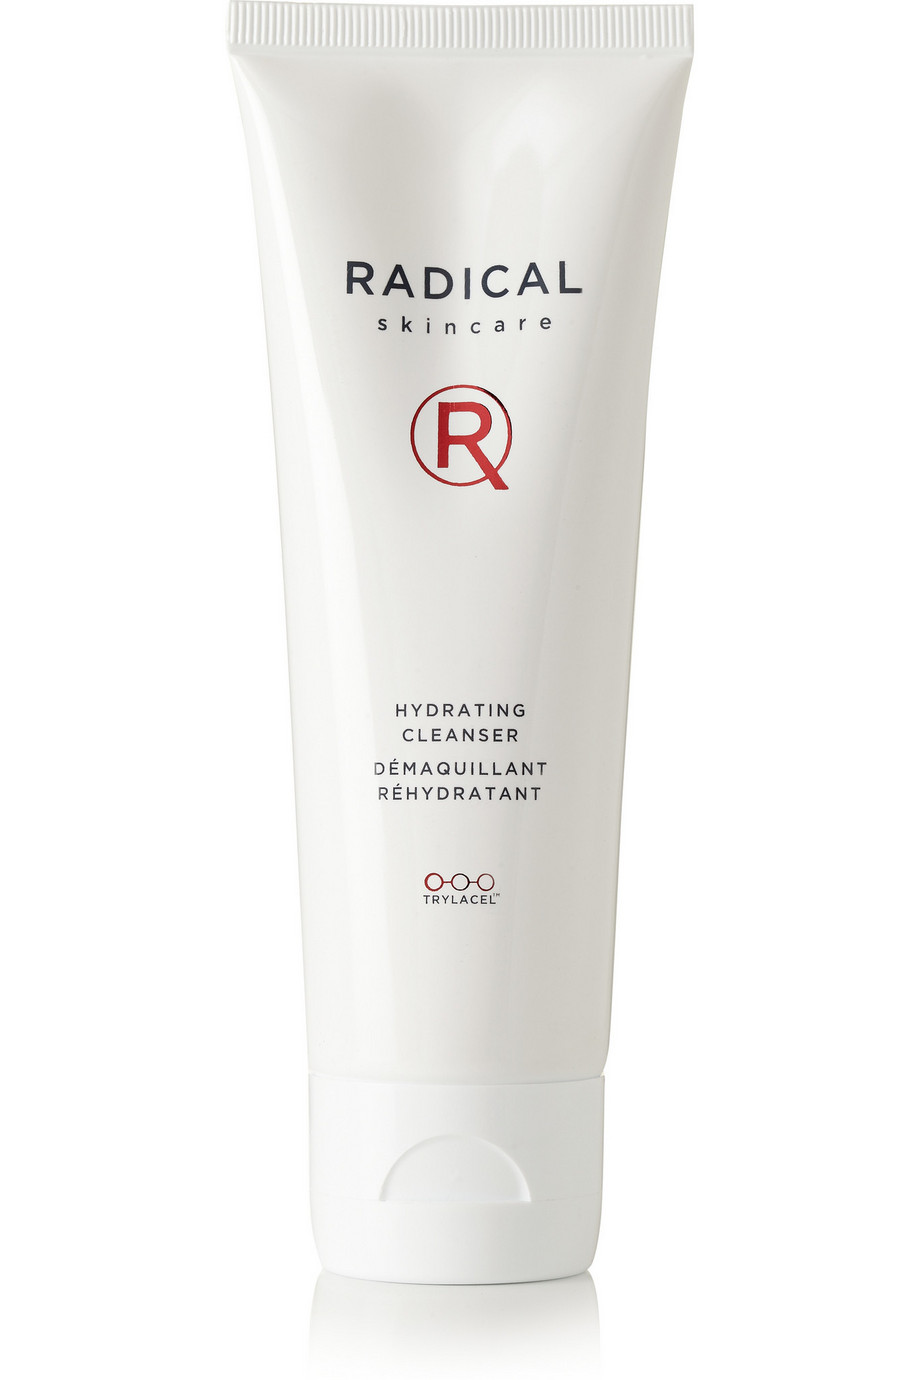 Hydrating Cleanser, 120ml, by Radical Skincare